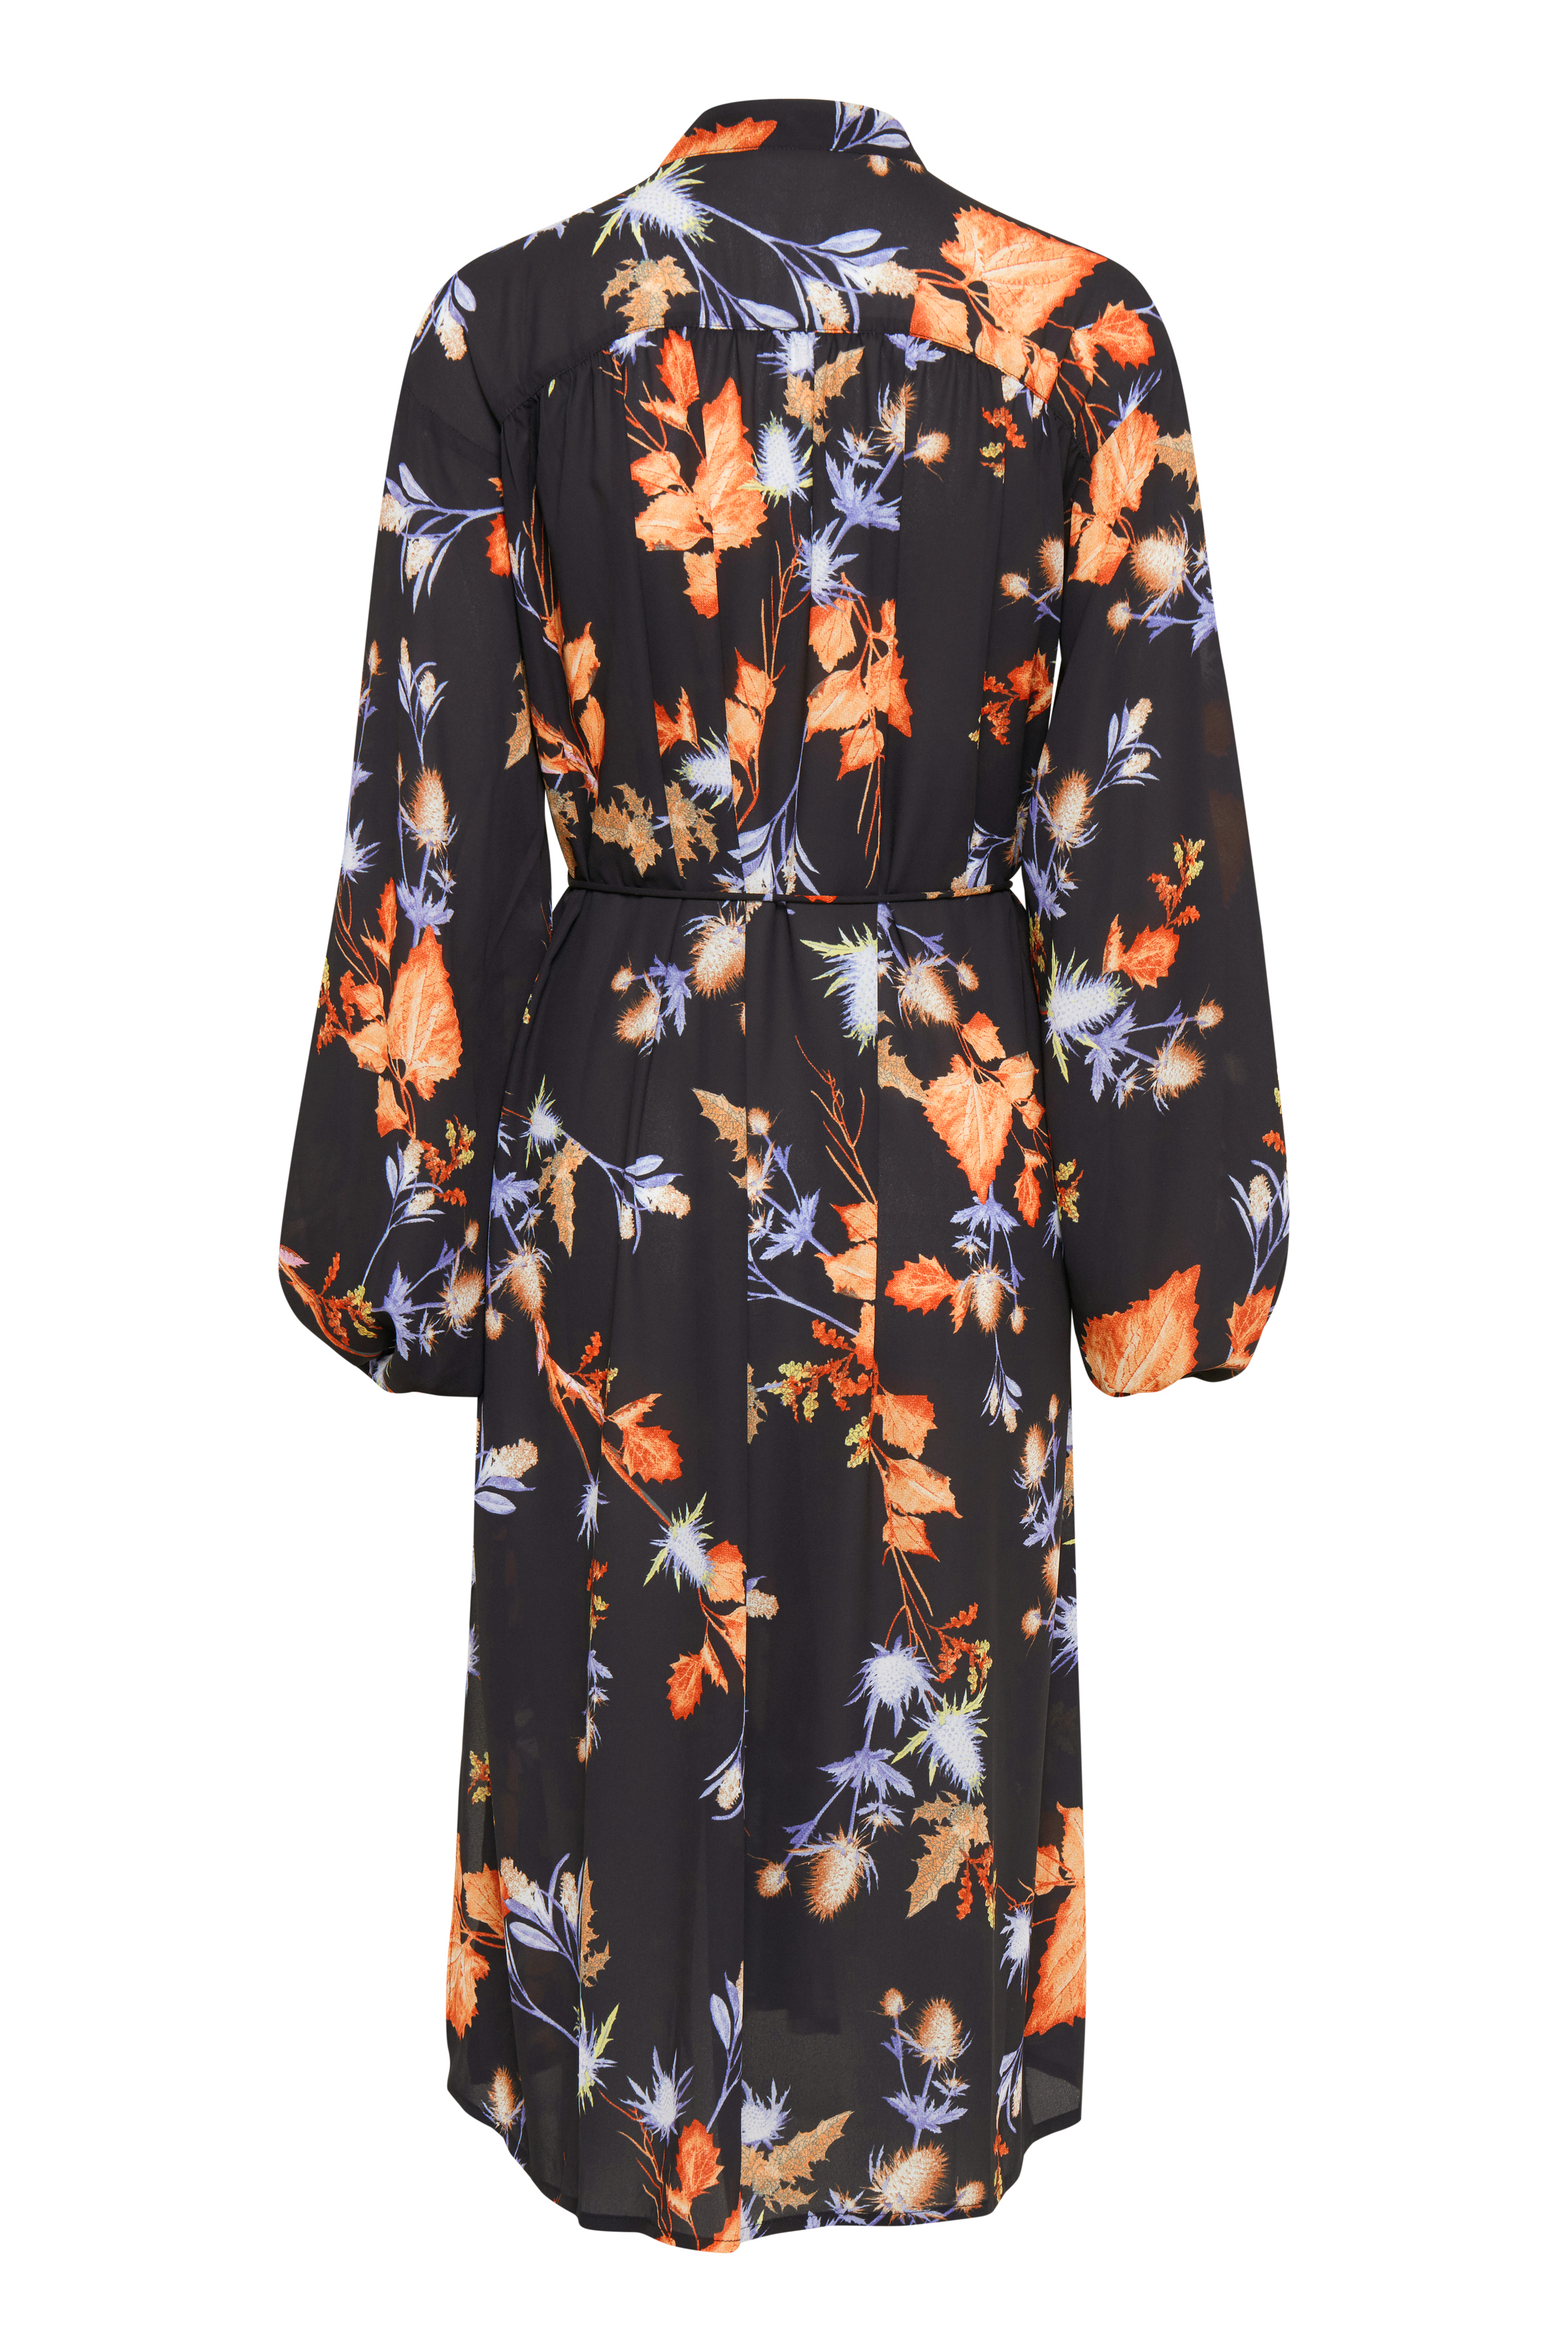 Black combi 1 Dress from b.young – Buy Black combi 1 Dress from size 34-46 here